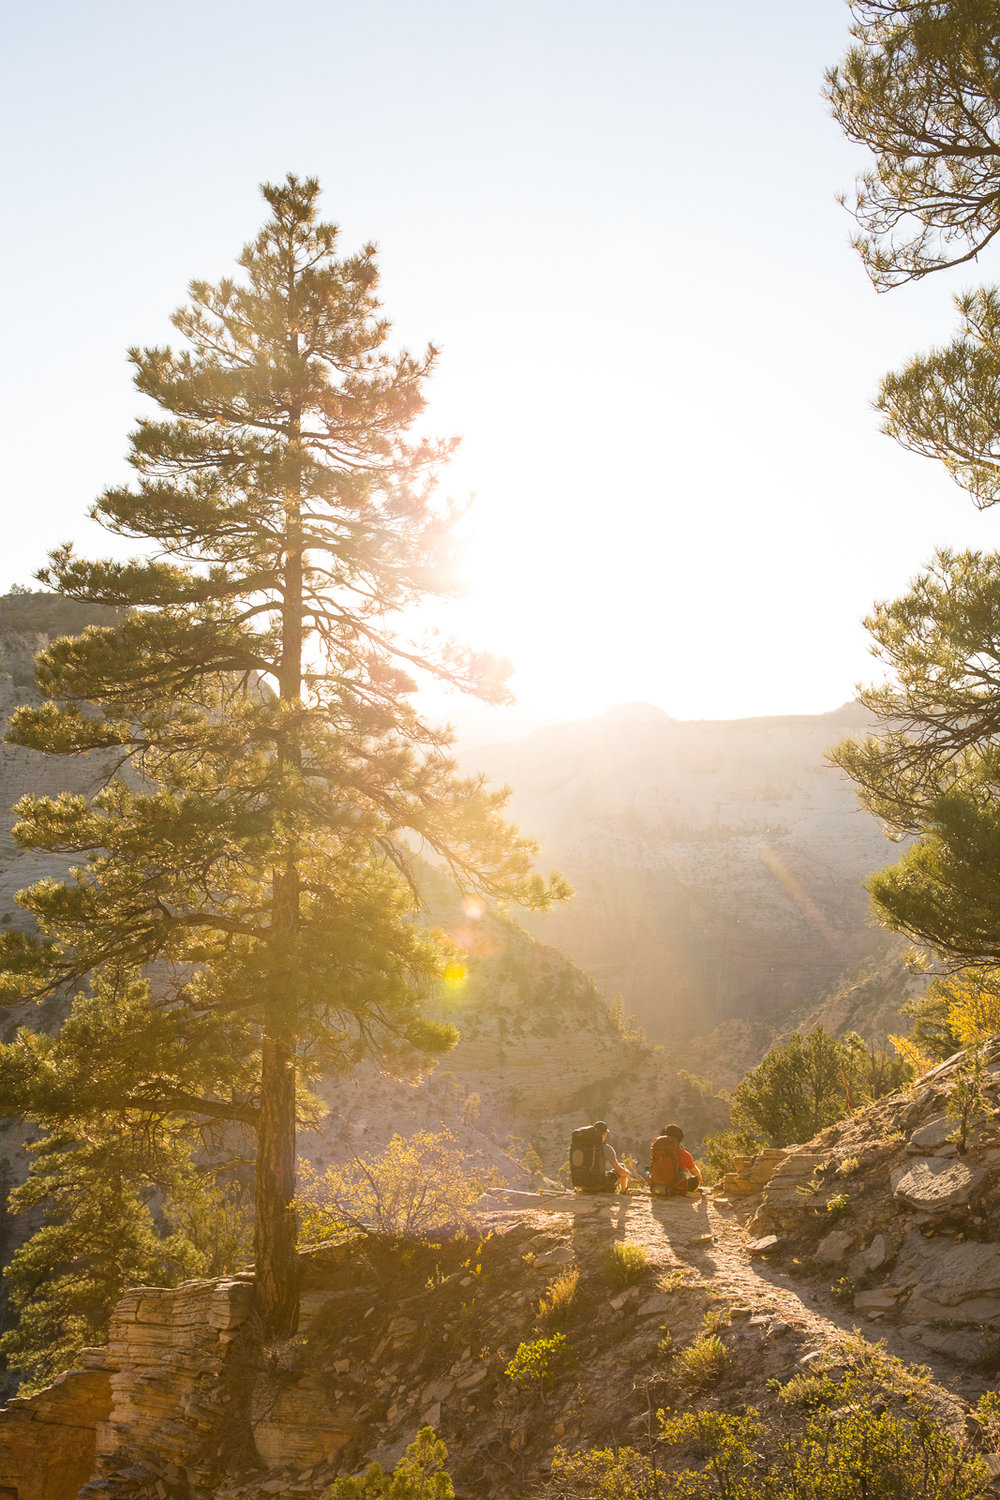 Backpacking East Rim Trail in Zion National Park